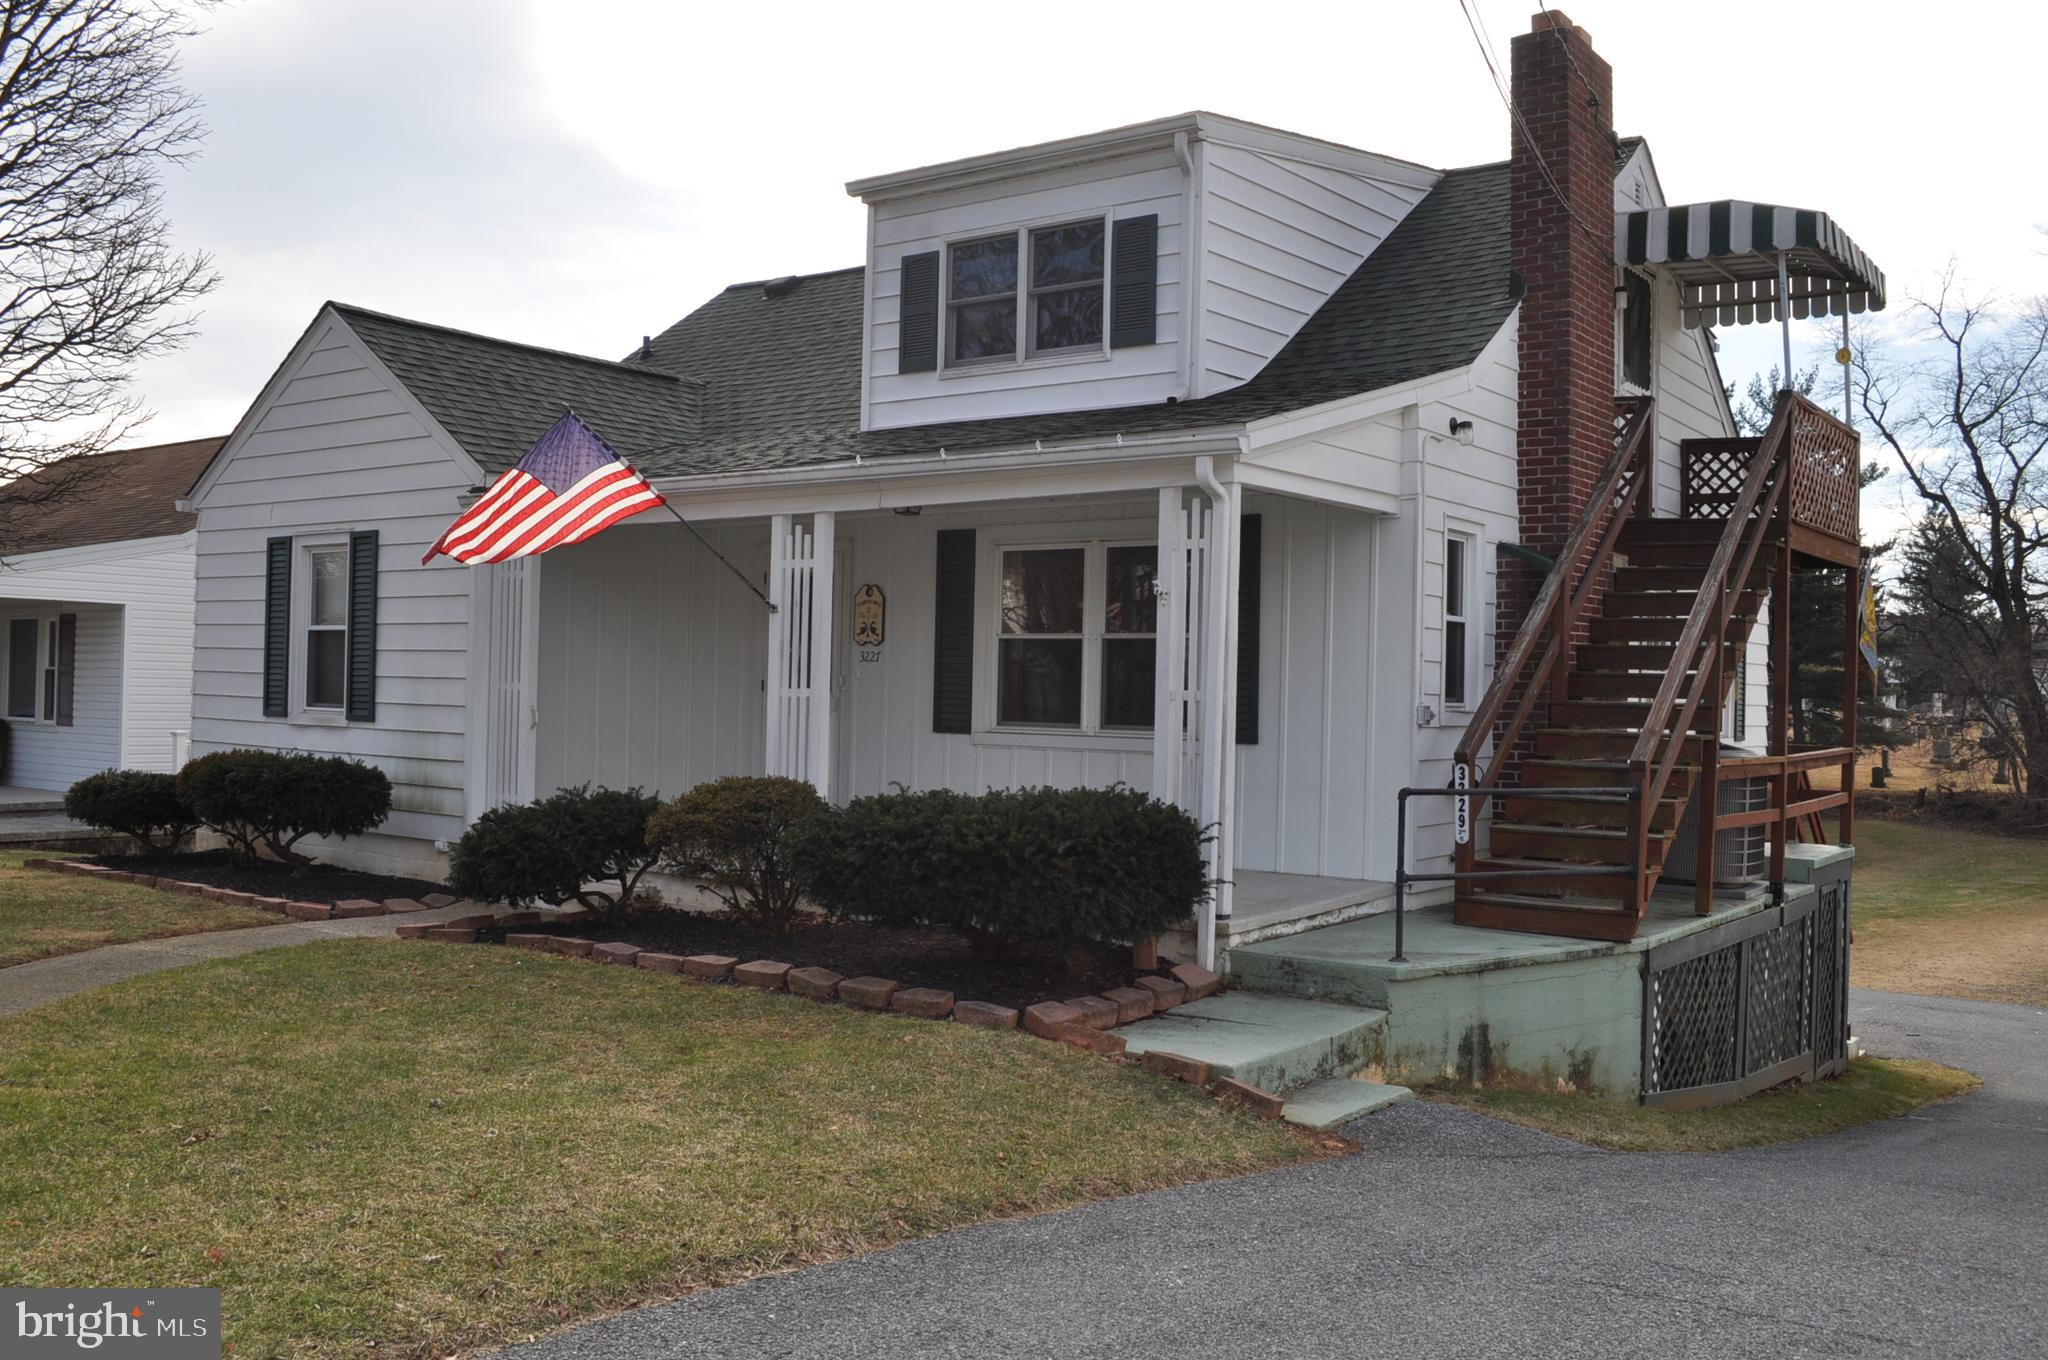 In town cape cod on a nice lot that has been used as 2 units. It has 2 bedrooms, 1 bath, living room